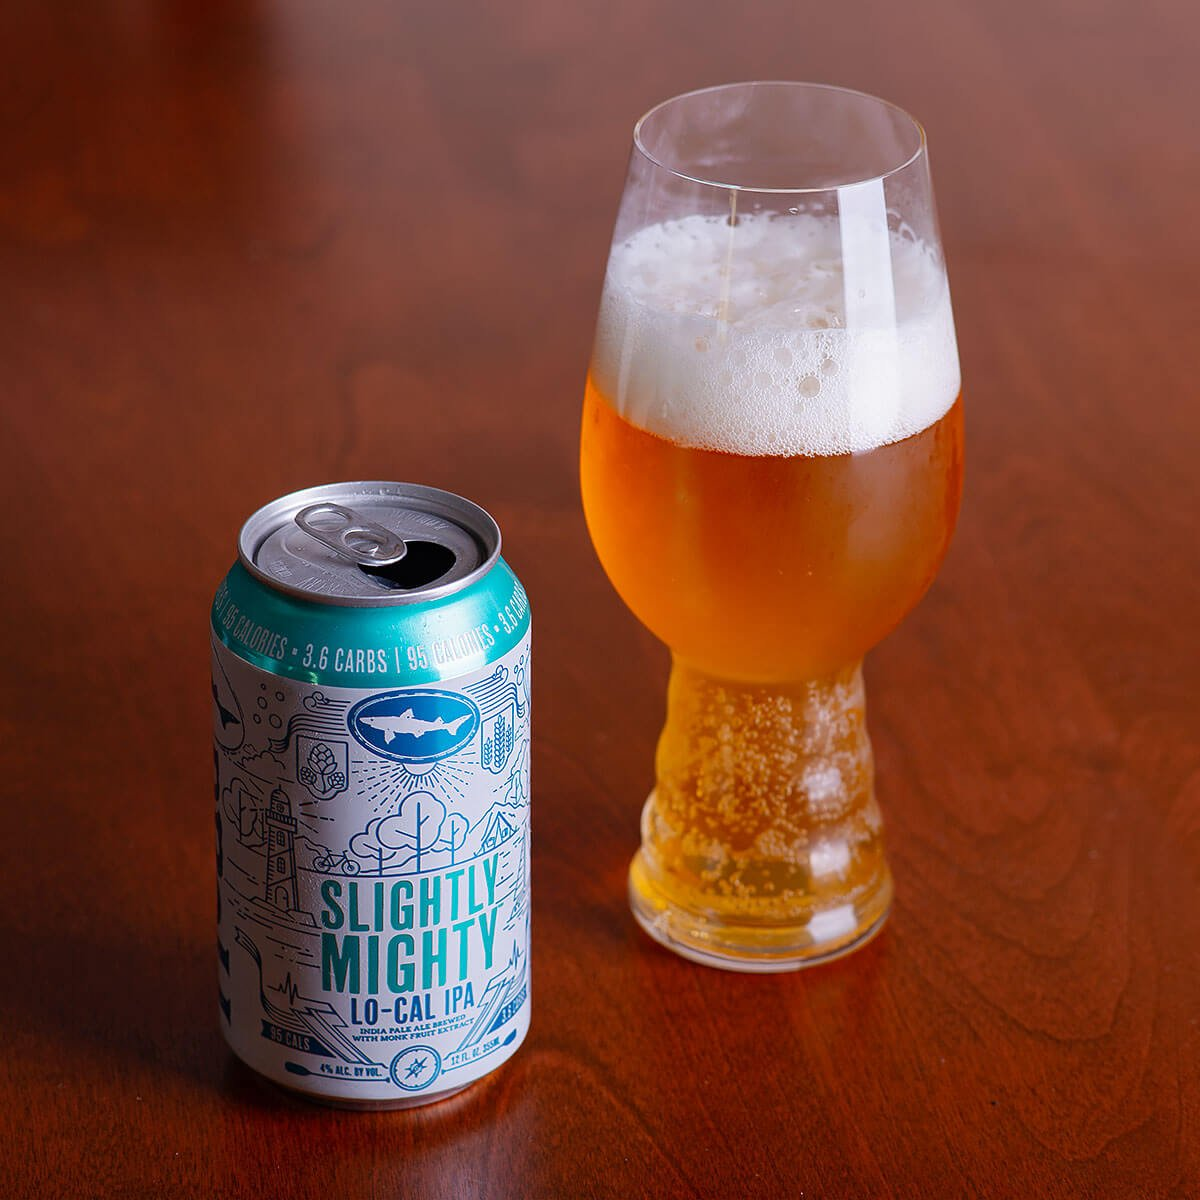 Slightly Mighty is a low-calorie American IPA by Dogfish Head Craft Brewery that features hoppy citrus, tropical fruit, and coconut.